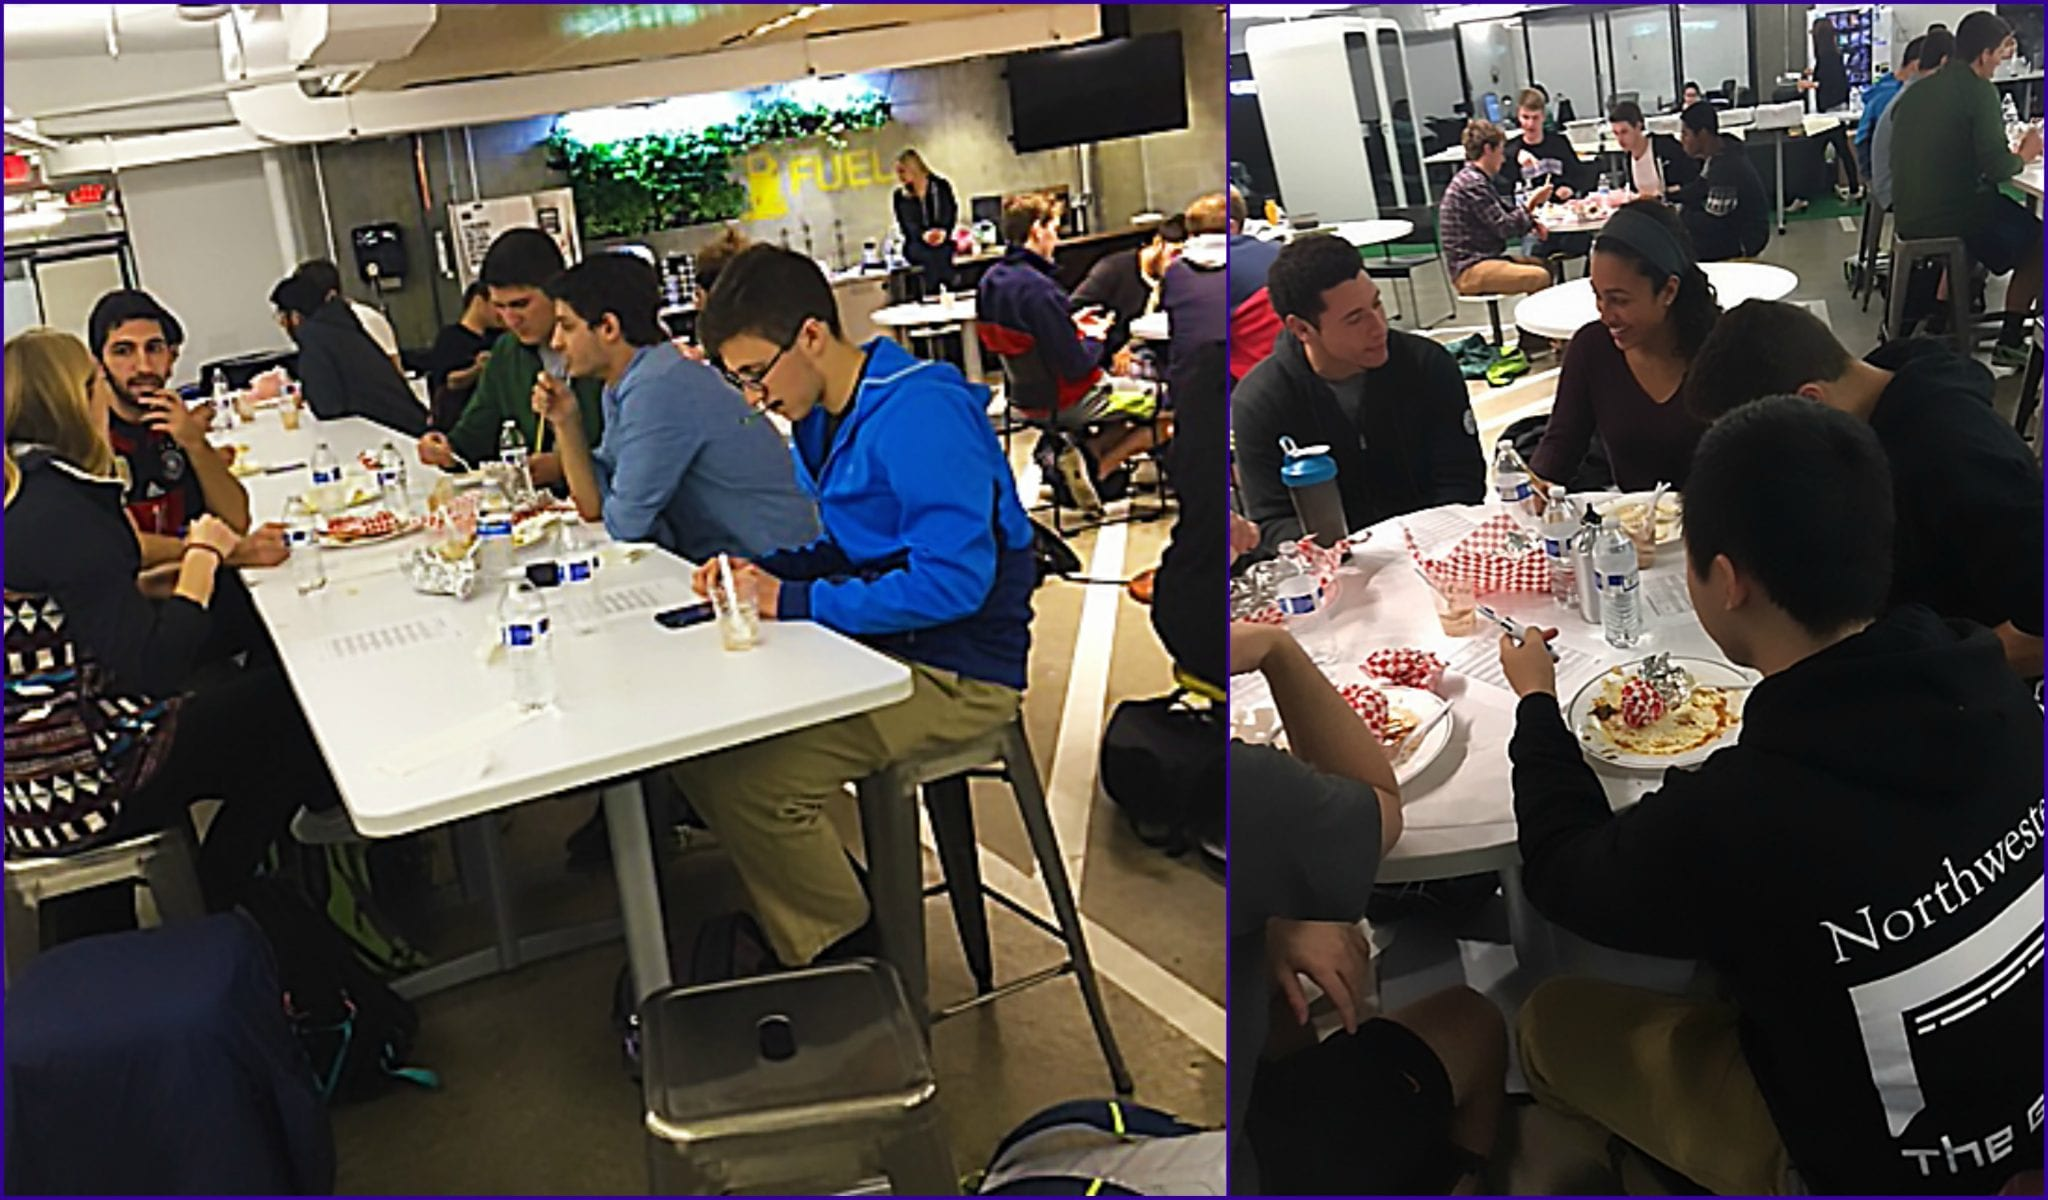 Image of students eating during Family Dinner